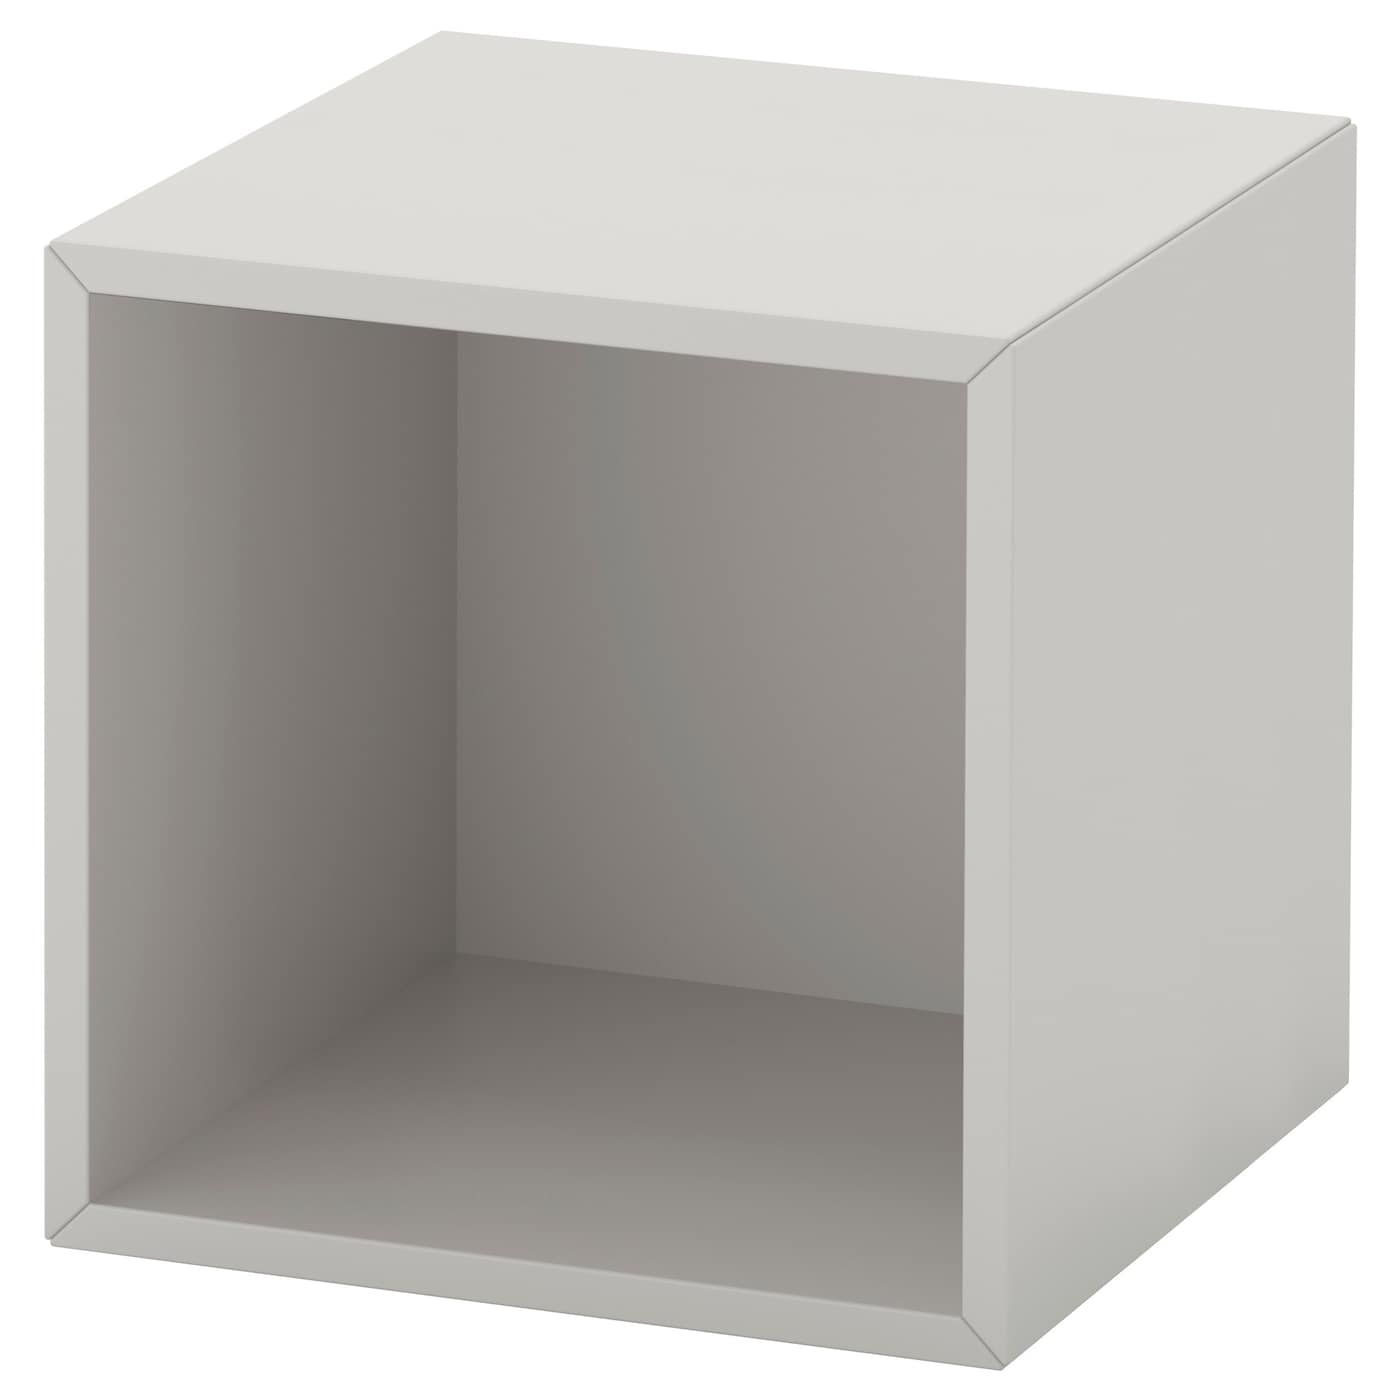 Eket cabinet light grey 35x35x35 cm ikea - Etagere murale casier ...